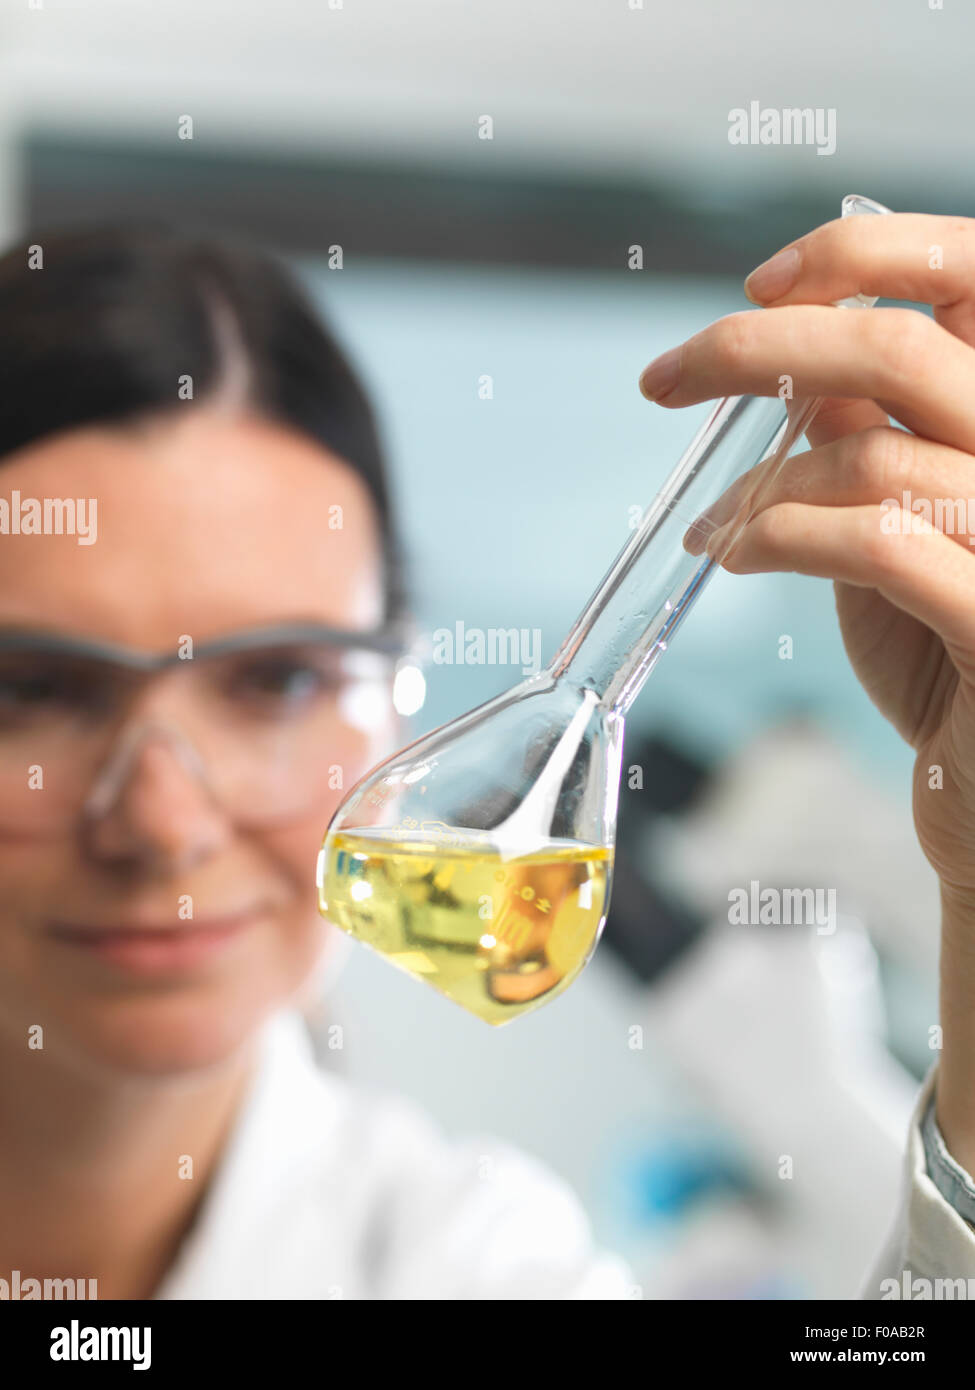 Chemist looking at solution in flask during research experiment - Stock Image